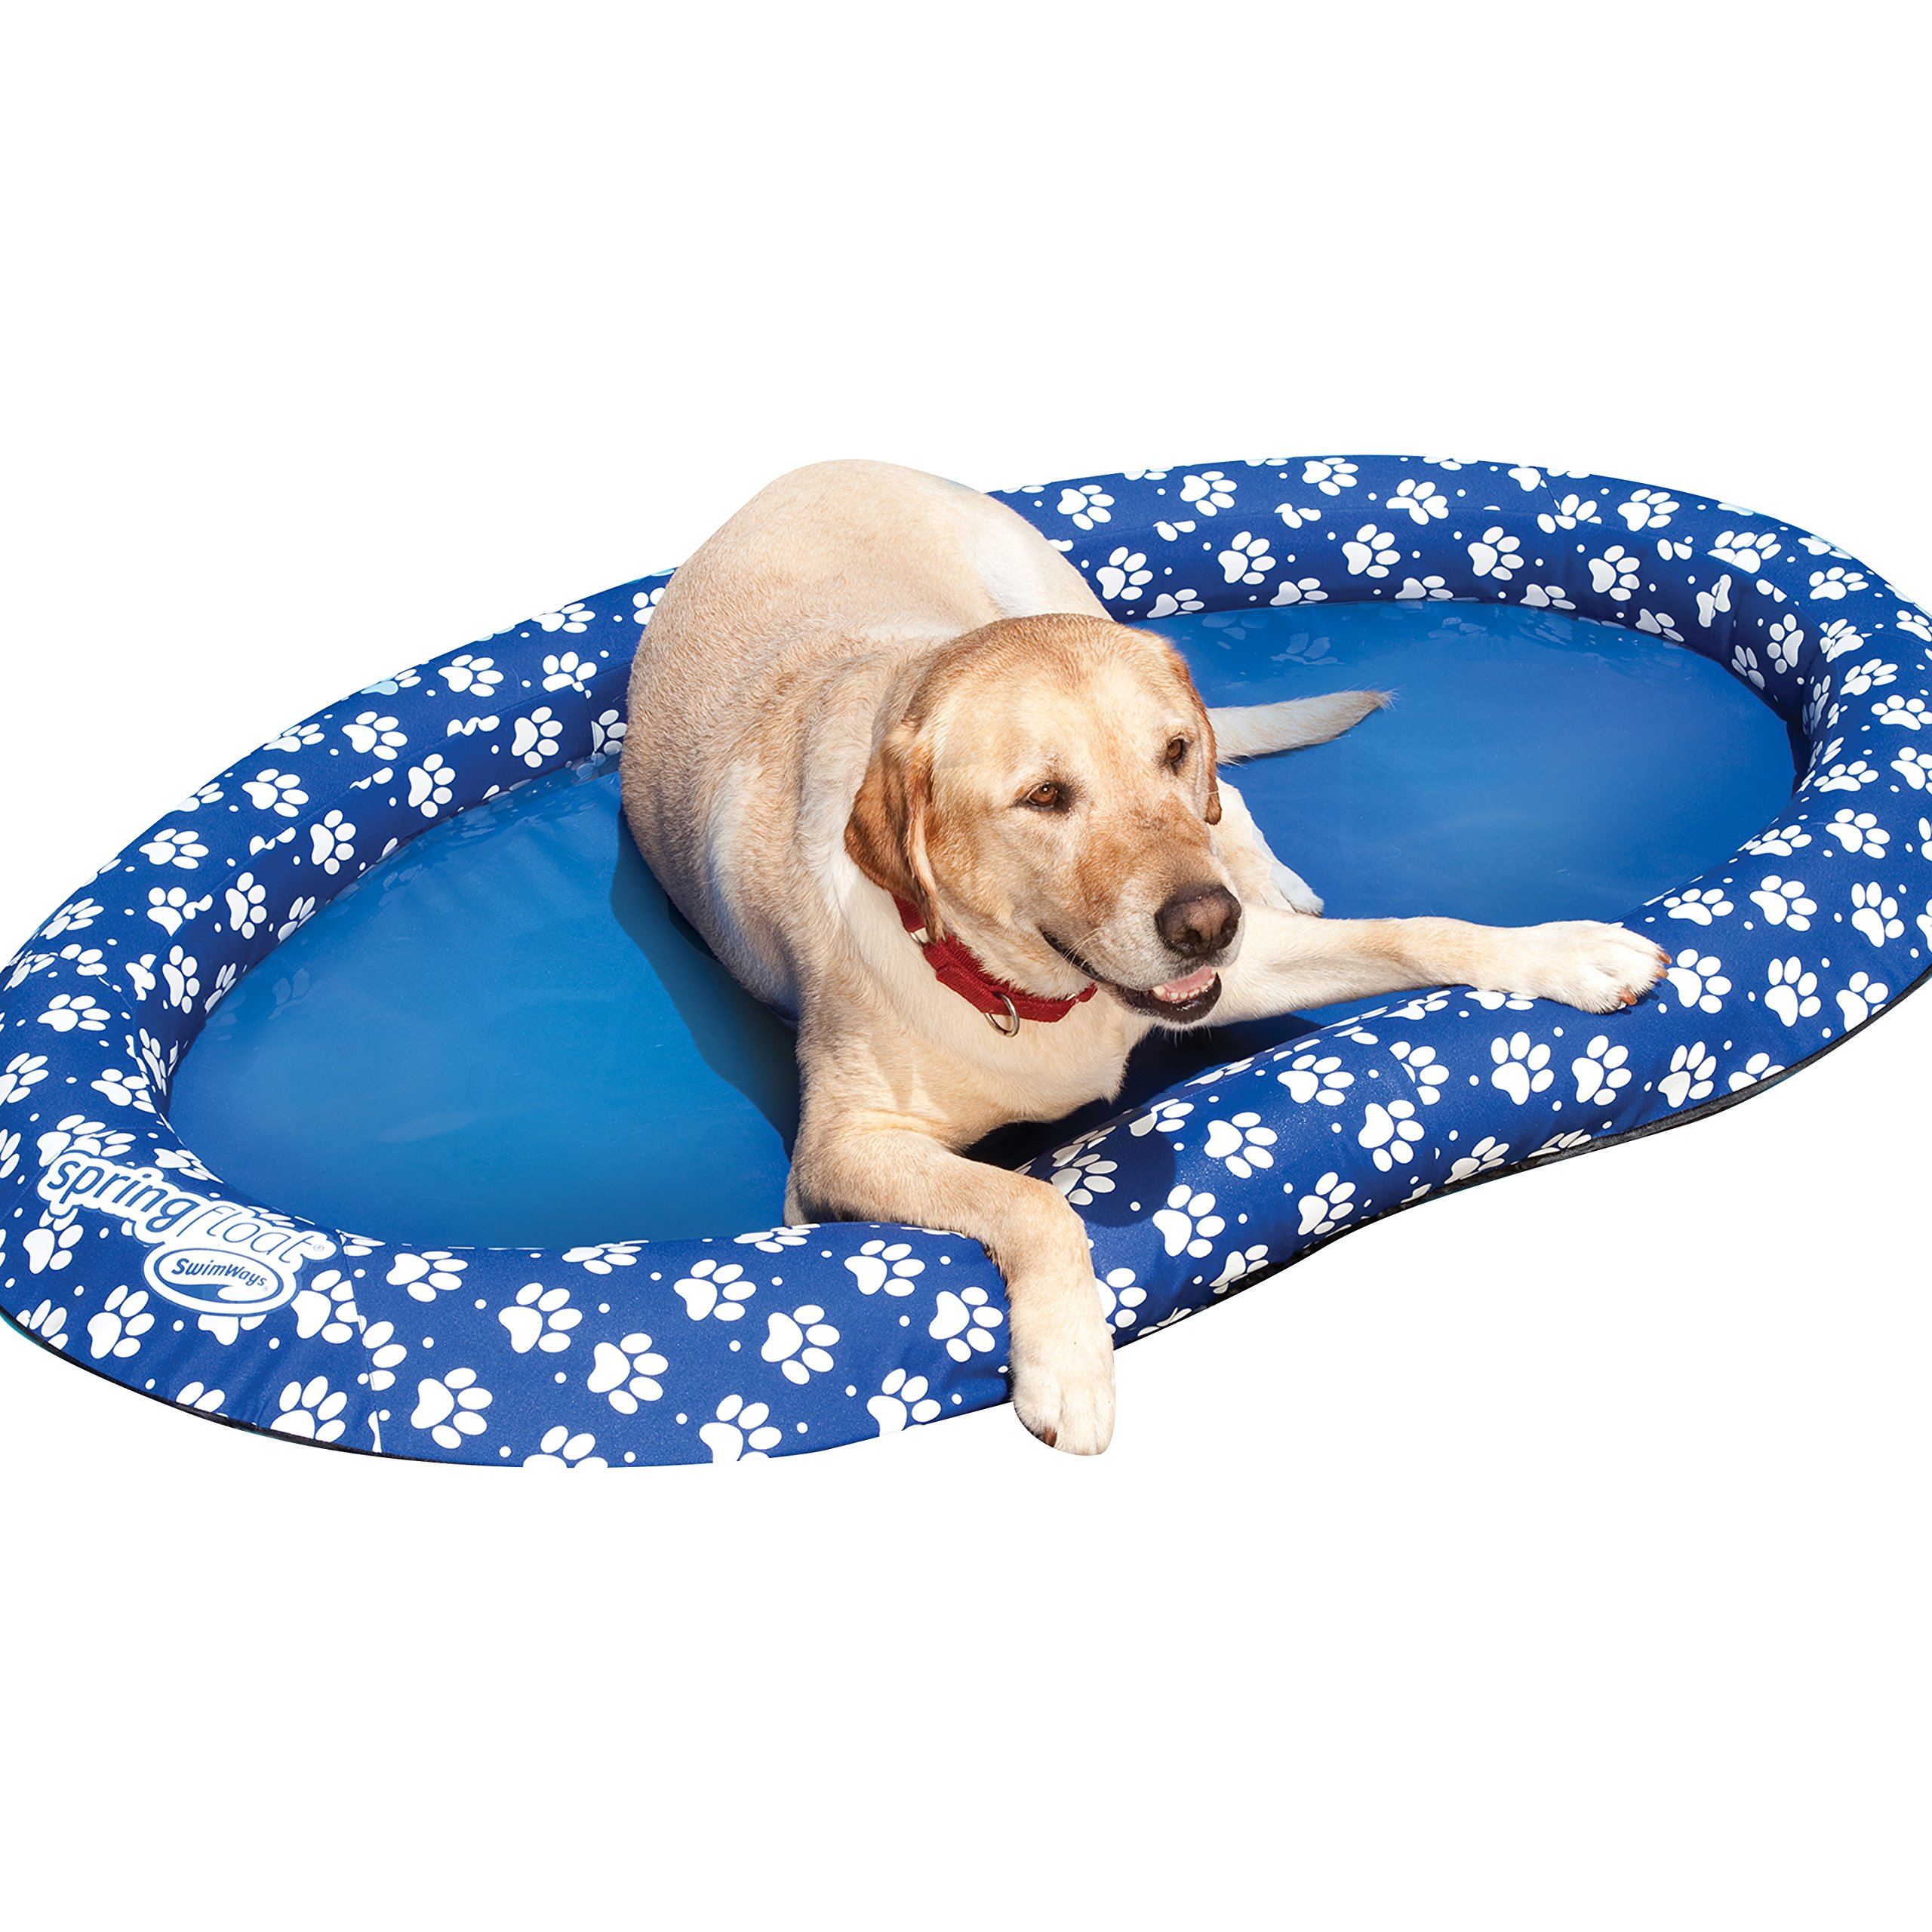 SwimWays Spring Float Paddle Paws Dog Pool Float - Large (65 lbs and Up) by SwimWays